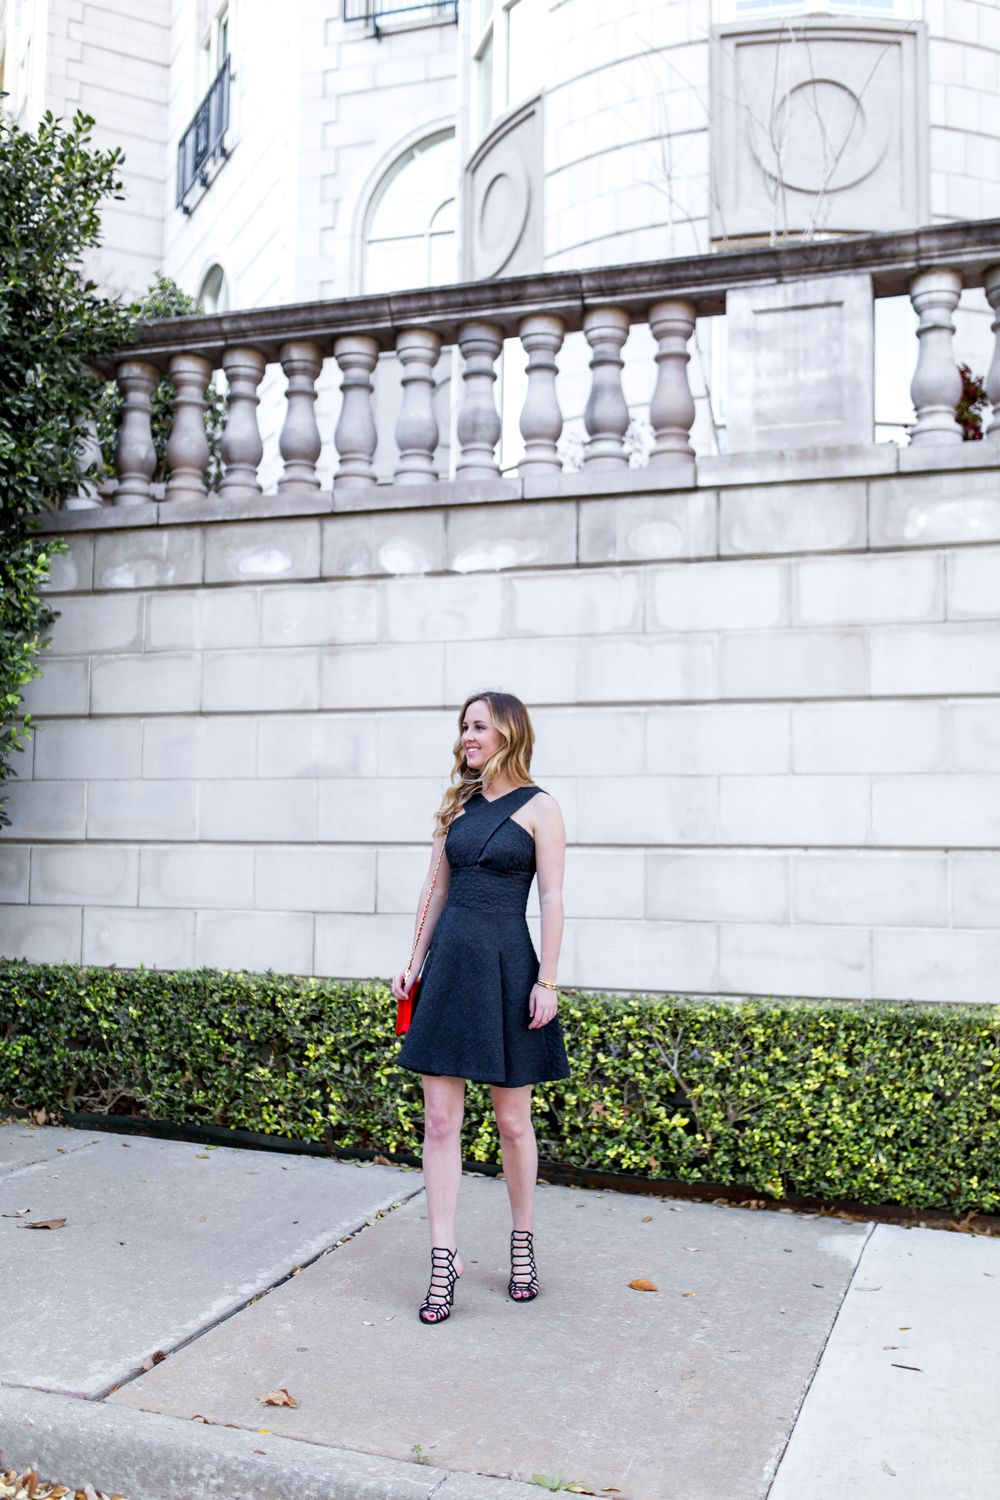 Textured LBD | Fit and Flare Dress | LBD | Cage Sandals | Red Purse | Ombre Waves | Spring Style | Summer Style | Miami Blogger | Outfit Inspiration